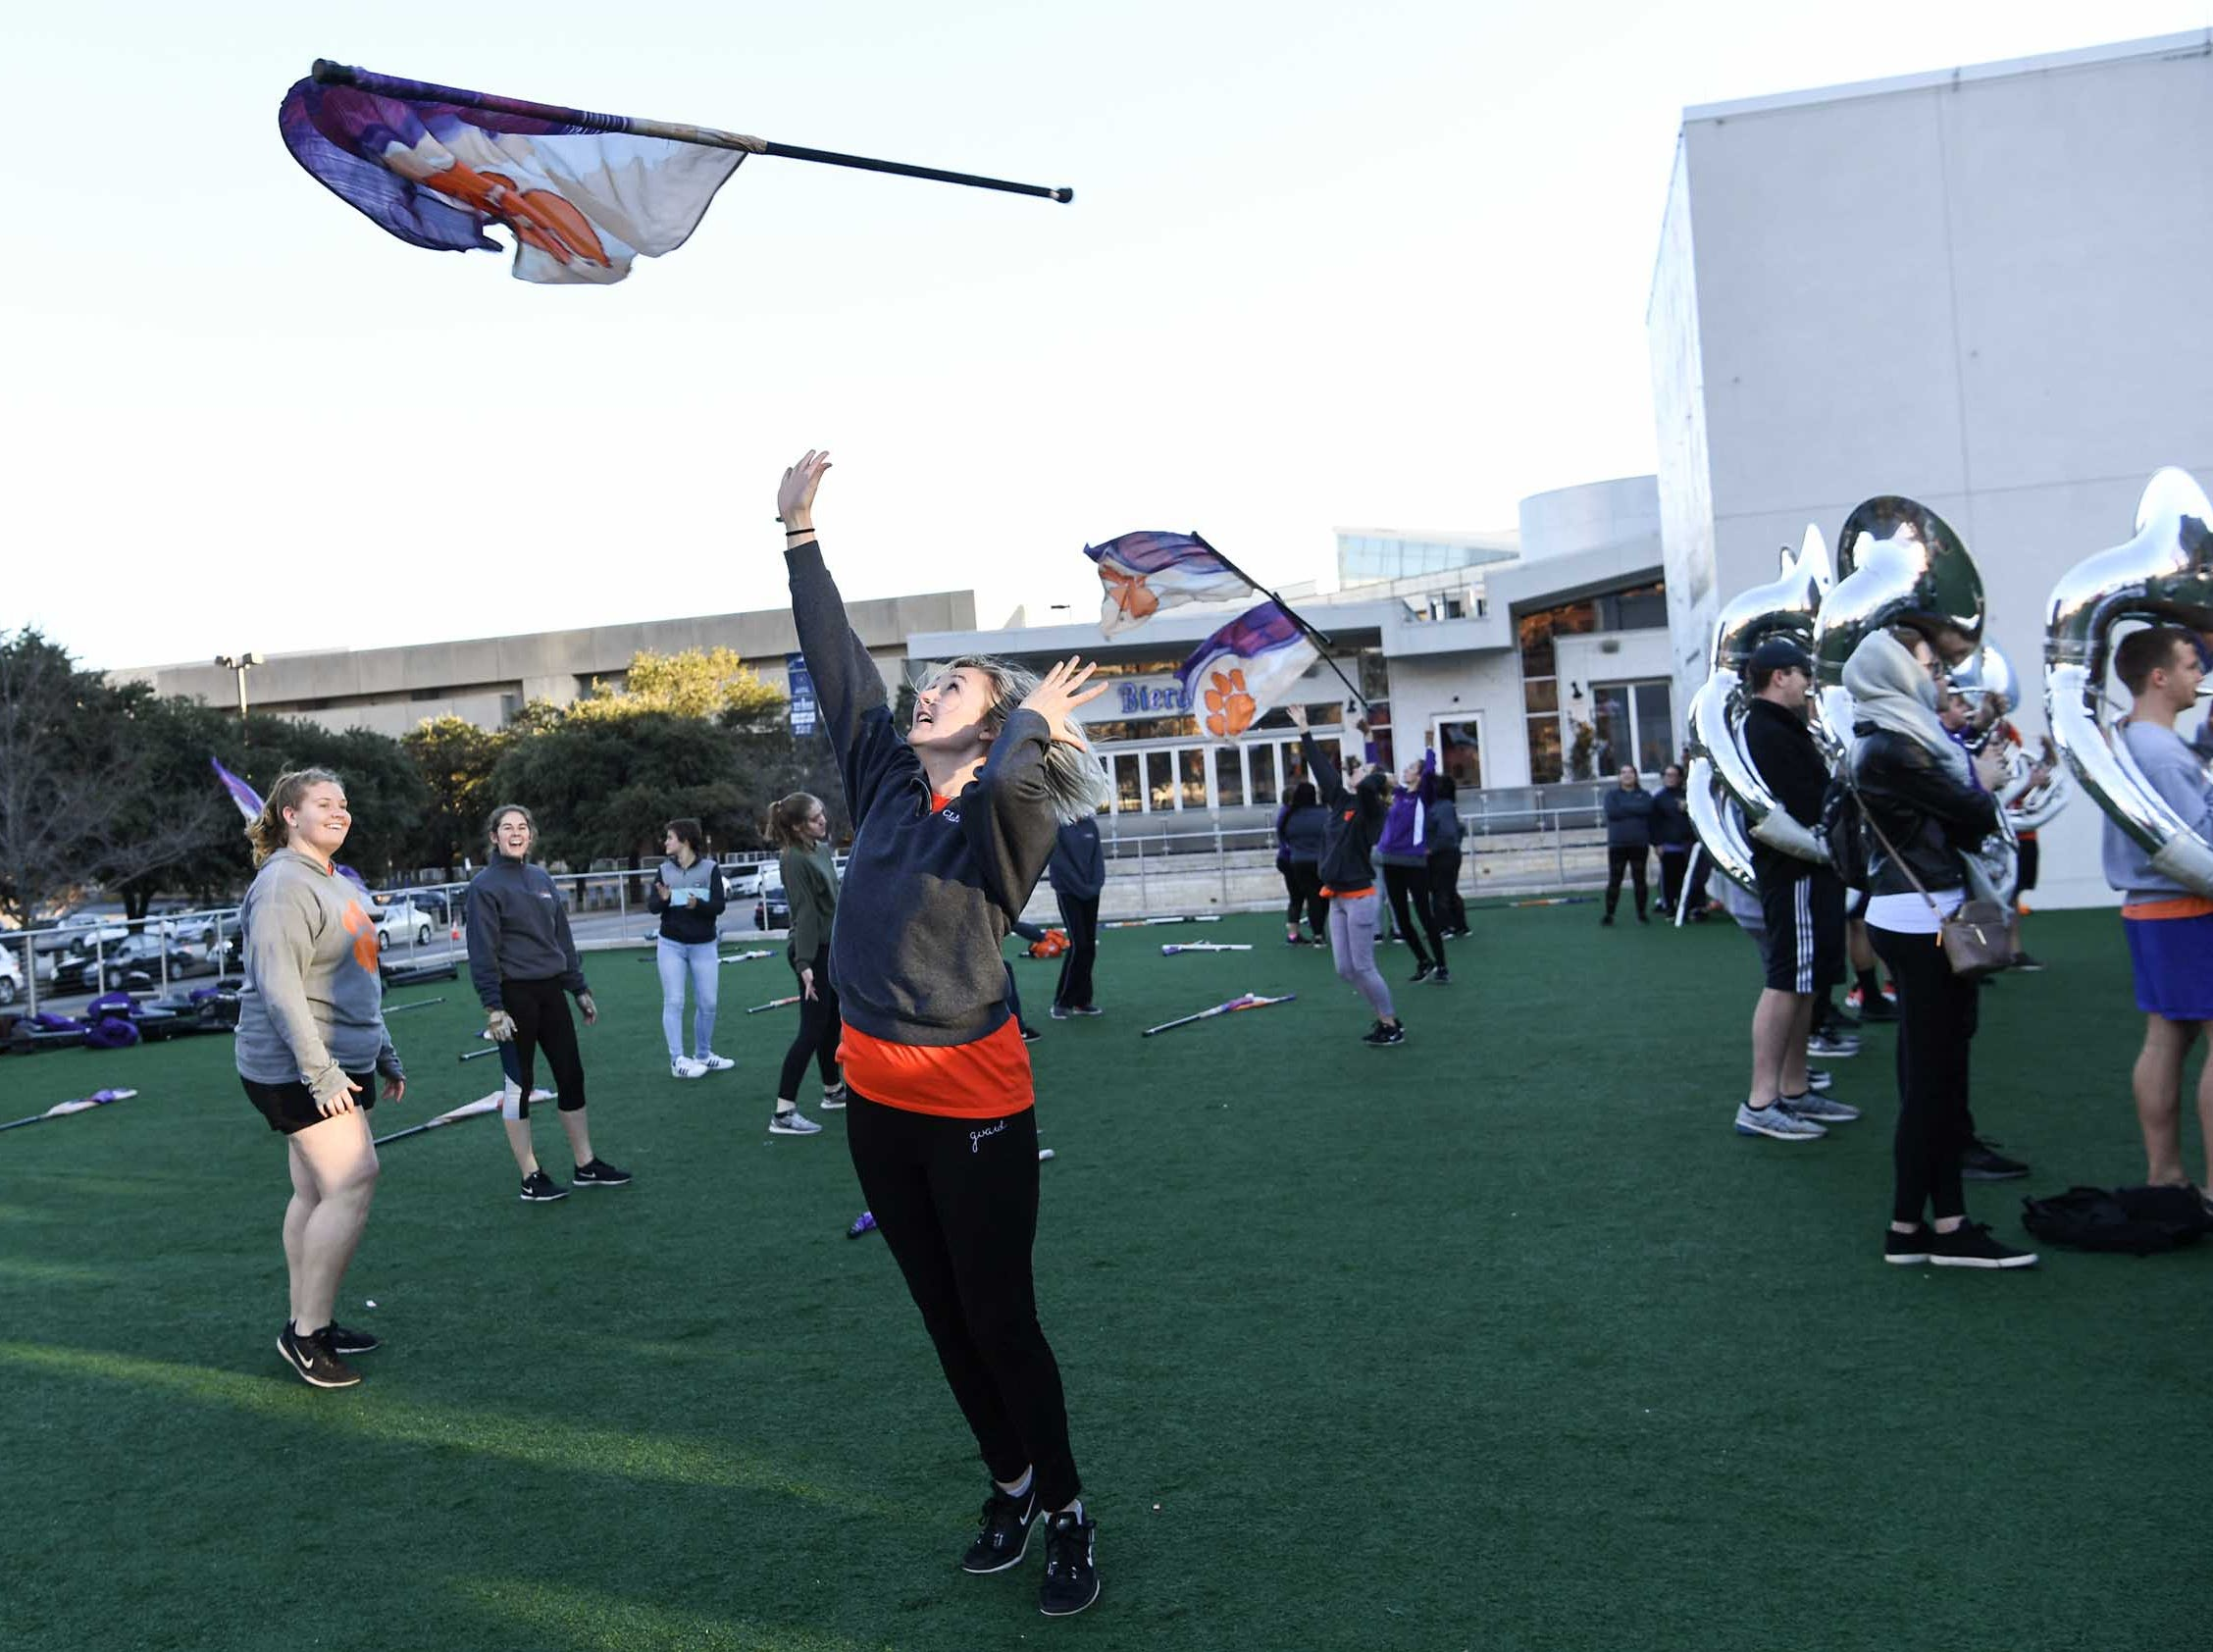 A Tiger Twirler practices while the Clemson Band plays outside the Omni in Dallas December 27, 2018.